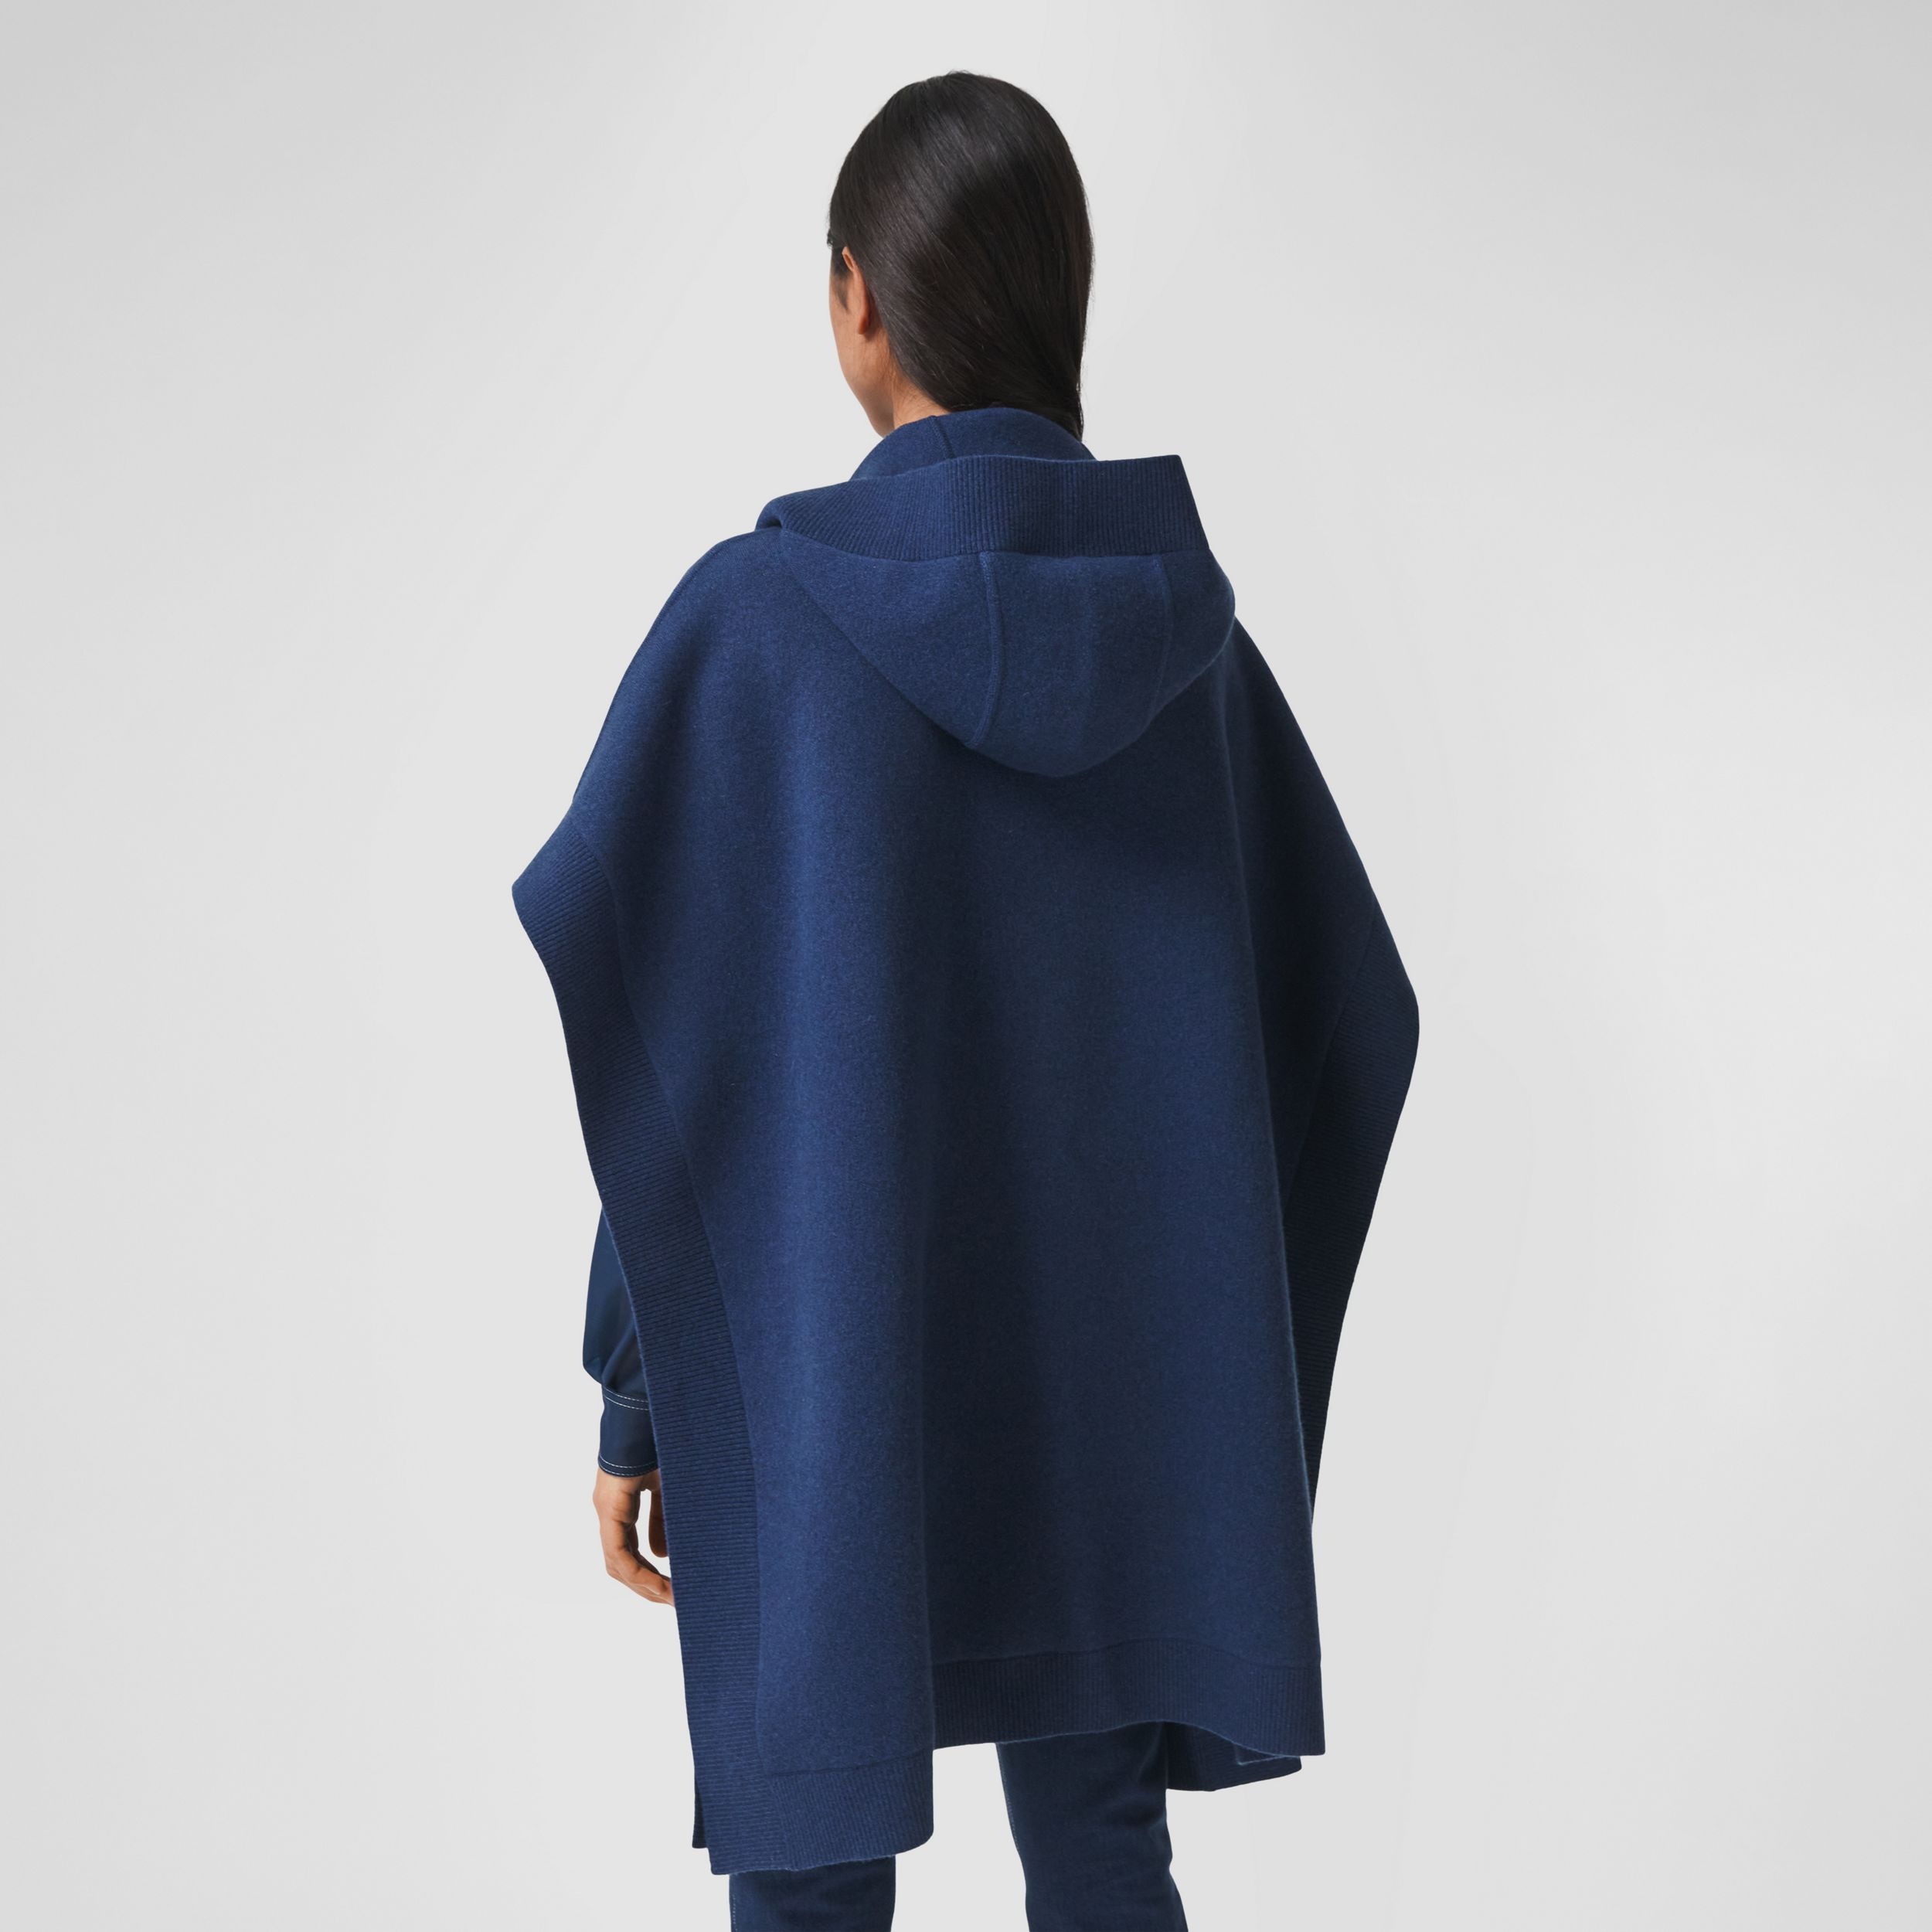 Monogram Motif Cashmere Blend Hooded Cape in Ink Blue - Women | Burberry - 3